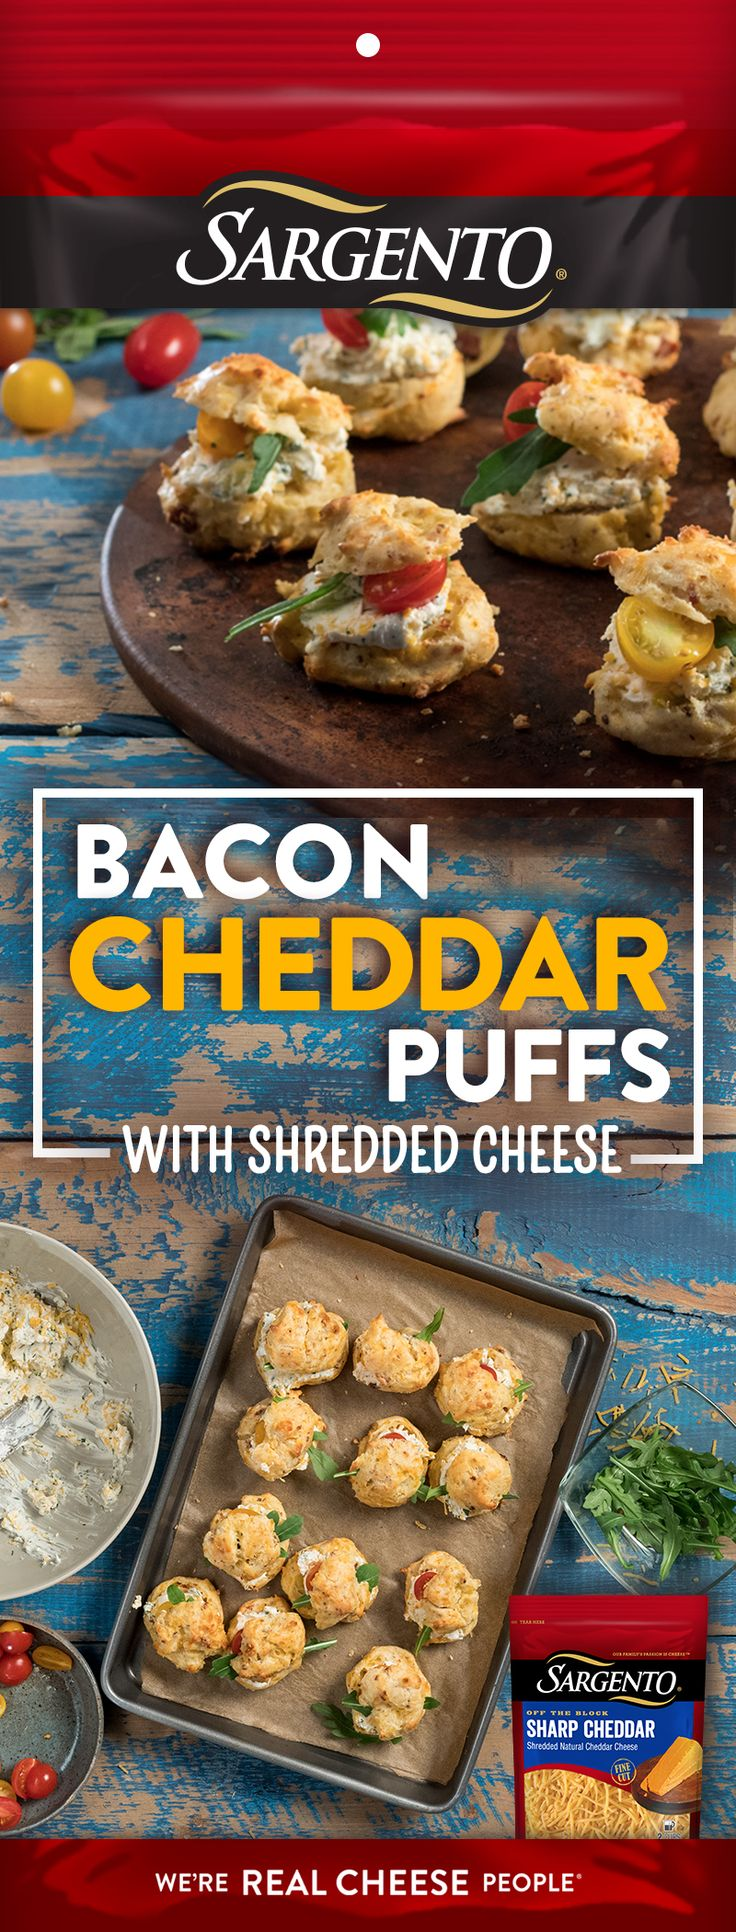 Try these tasty morsels for the ultimate appetizer. These Bacon Cheddar Puffs, made with Off-The-Block Sargento® shredded cheese, will have everyone coming back for seconds… and thirds.